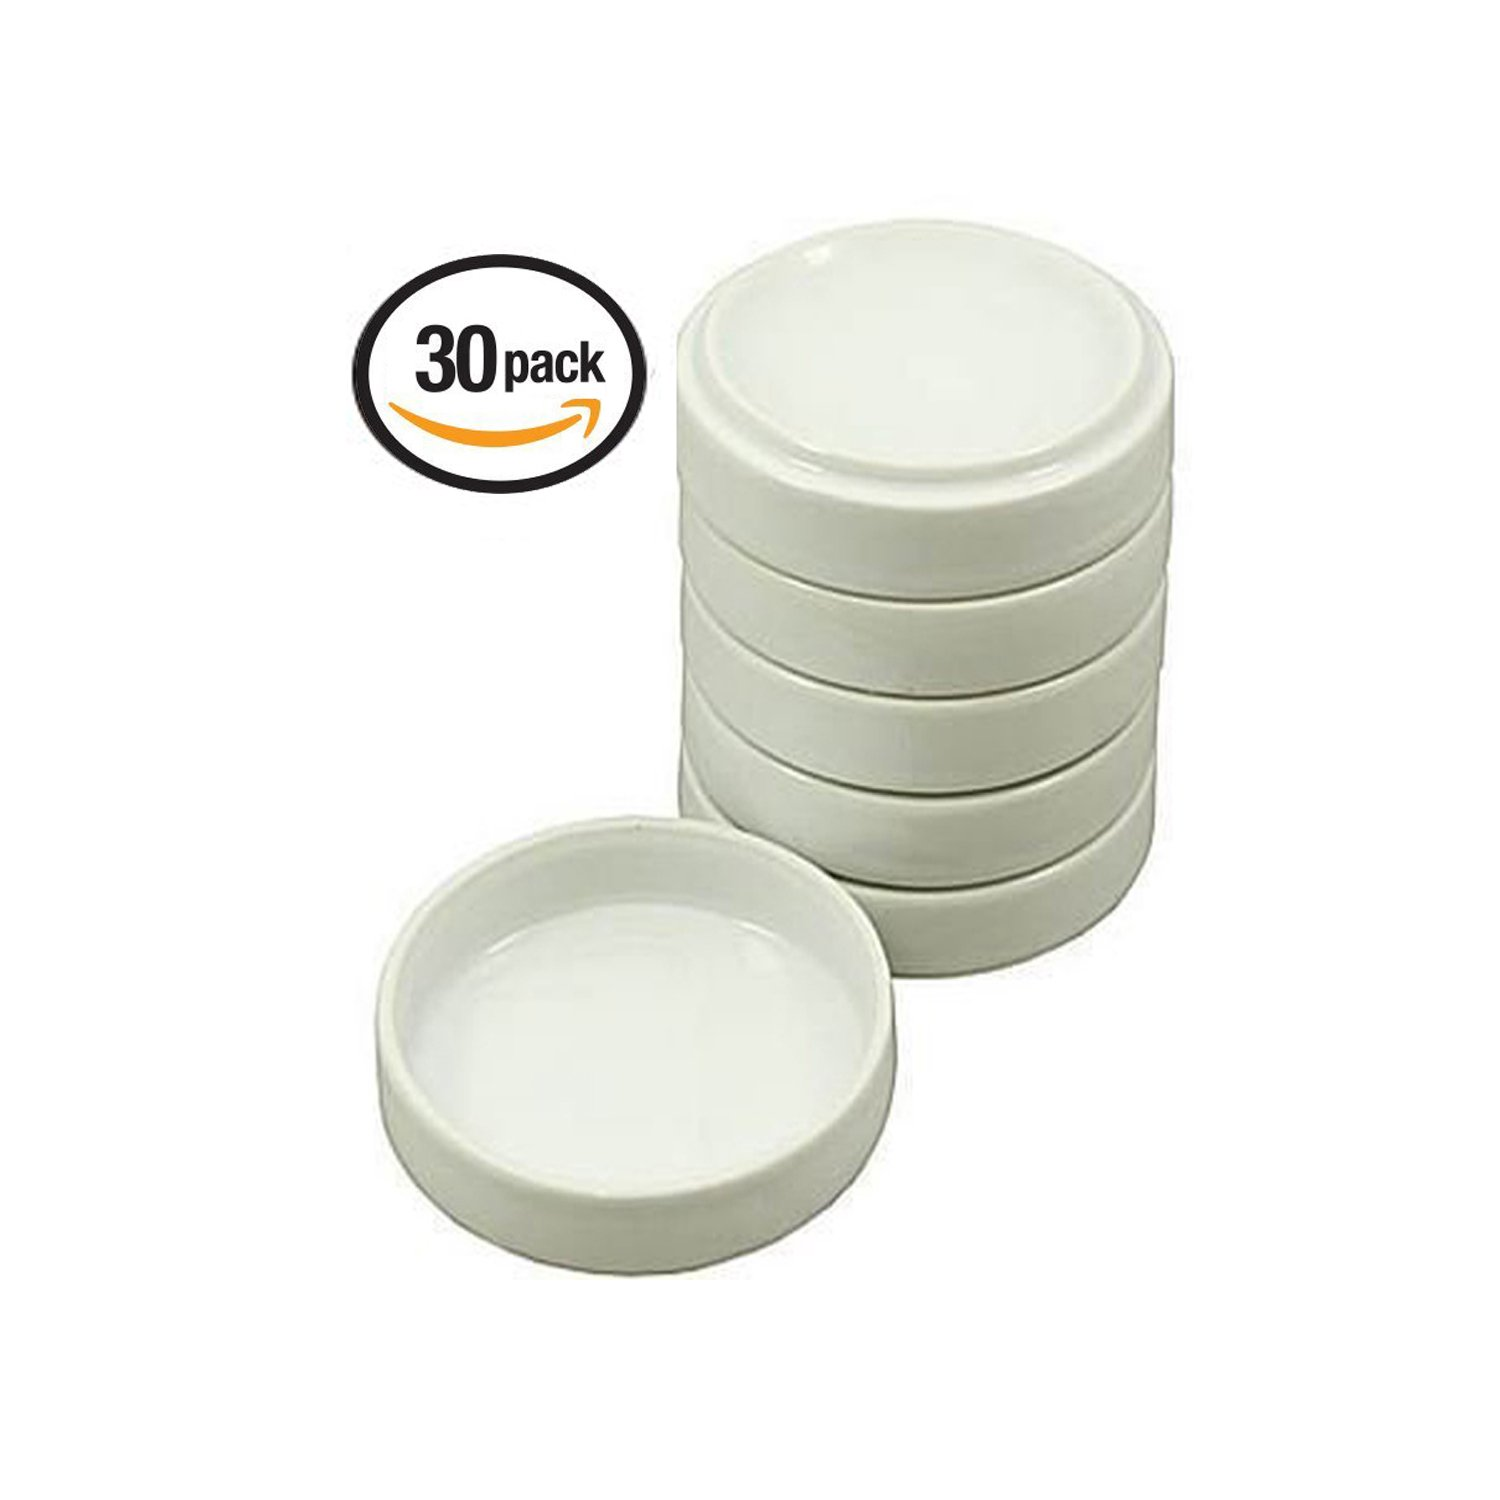 Vivid Porcelain White Round Watercolor Palette Container Dish with Lid – for Painting, Small Jewelry Storage, Sauce Dishes – 30 Pack